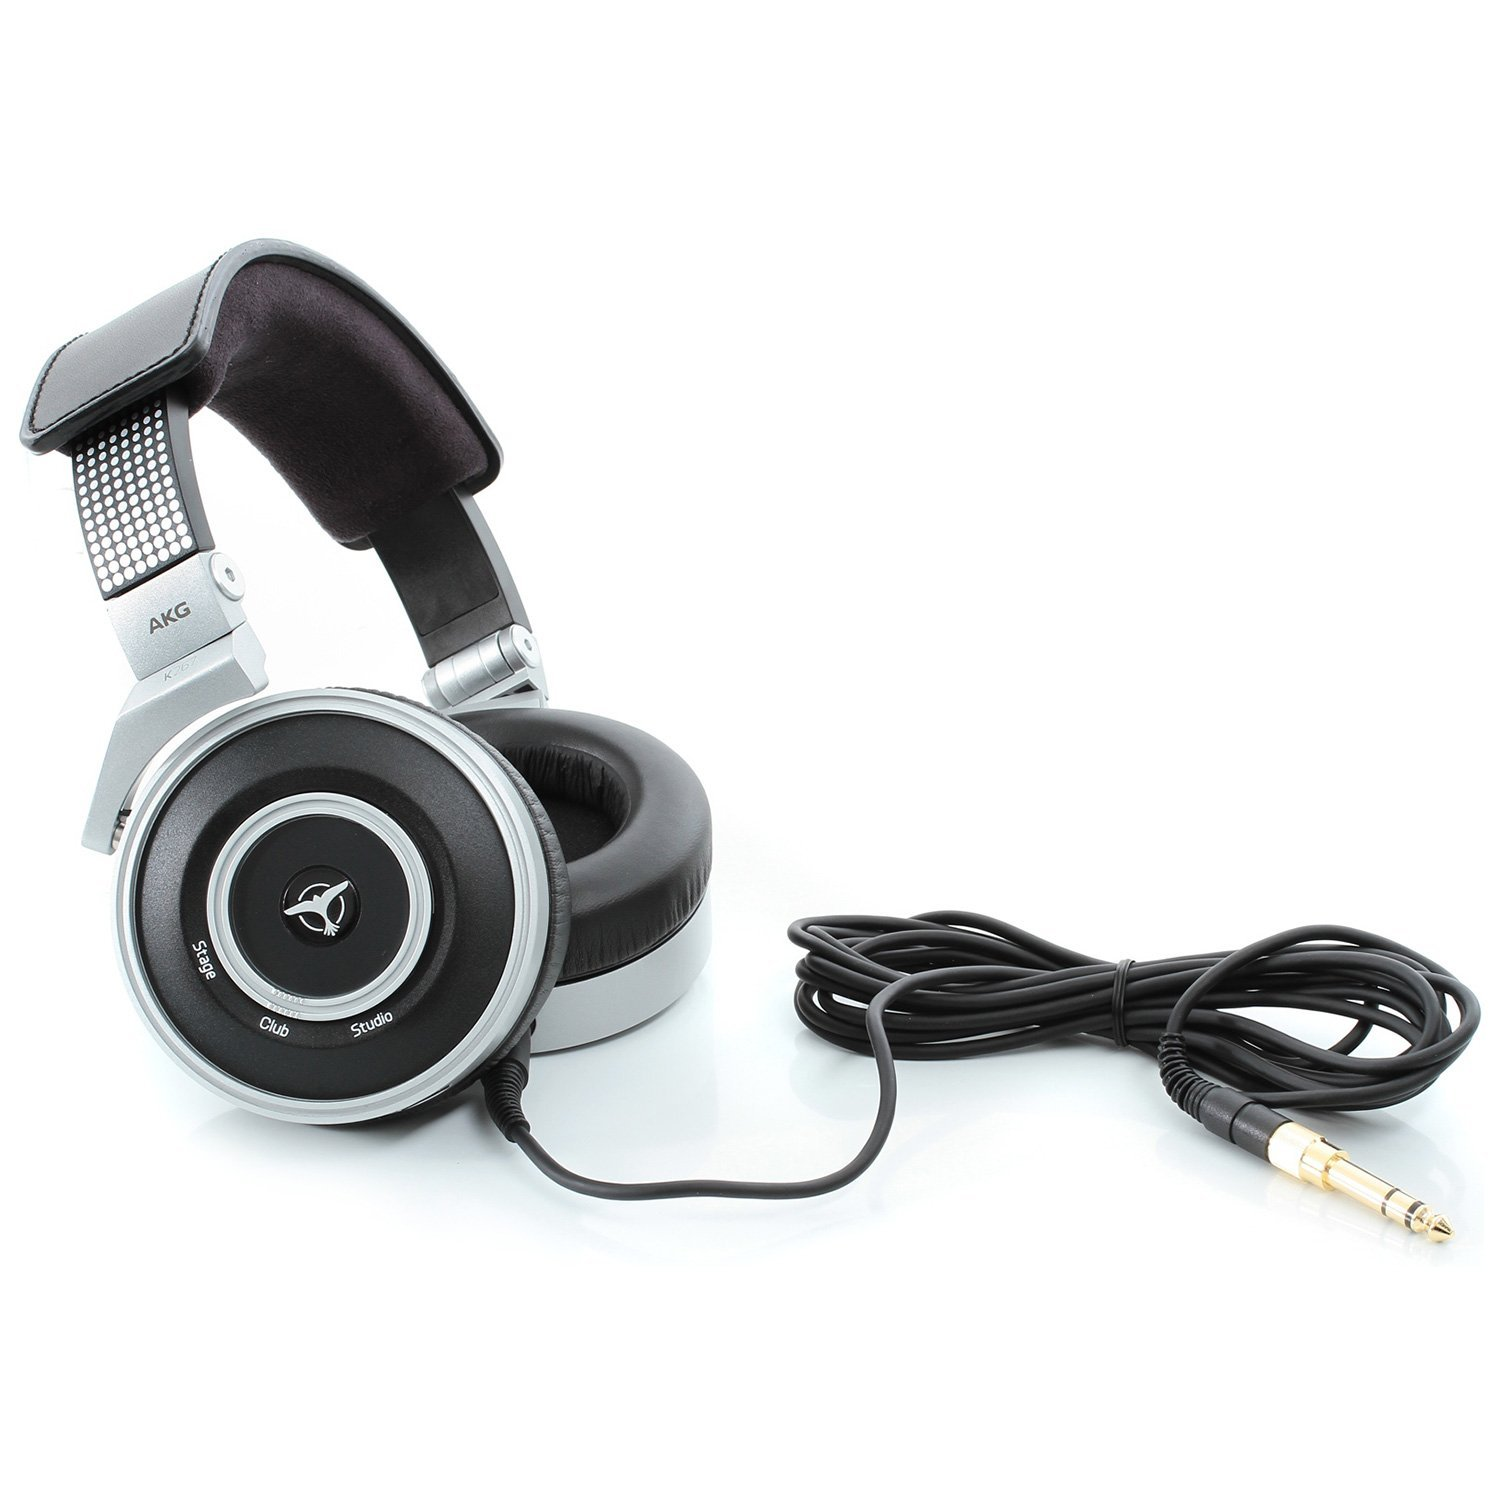 AKG K267 Tiesto DJ Headphones Review